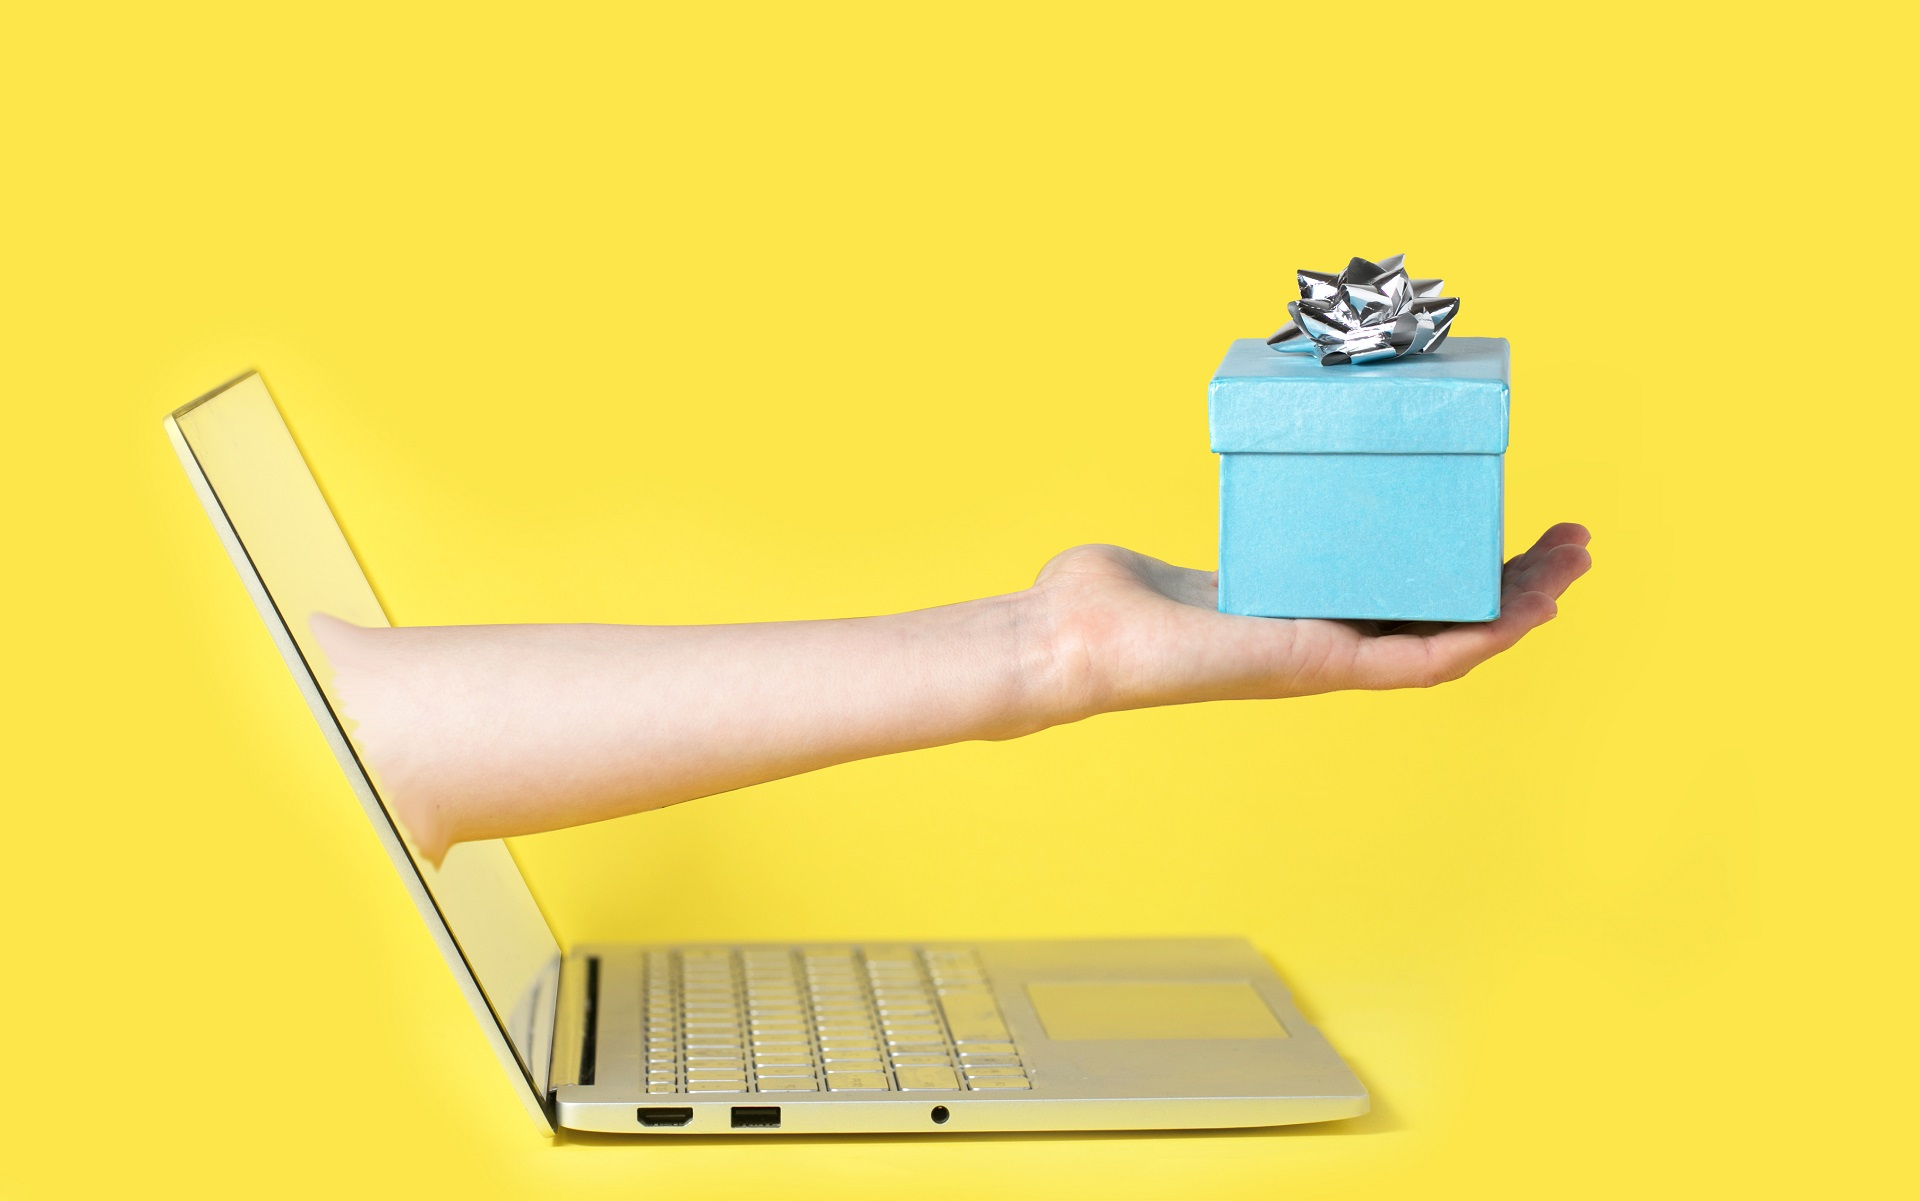 A hand coming out of computer screen and presenting a wrapped gift